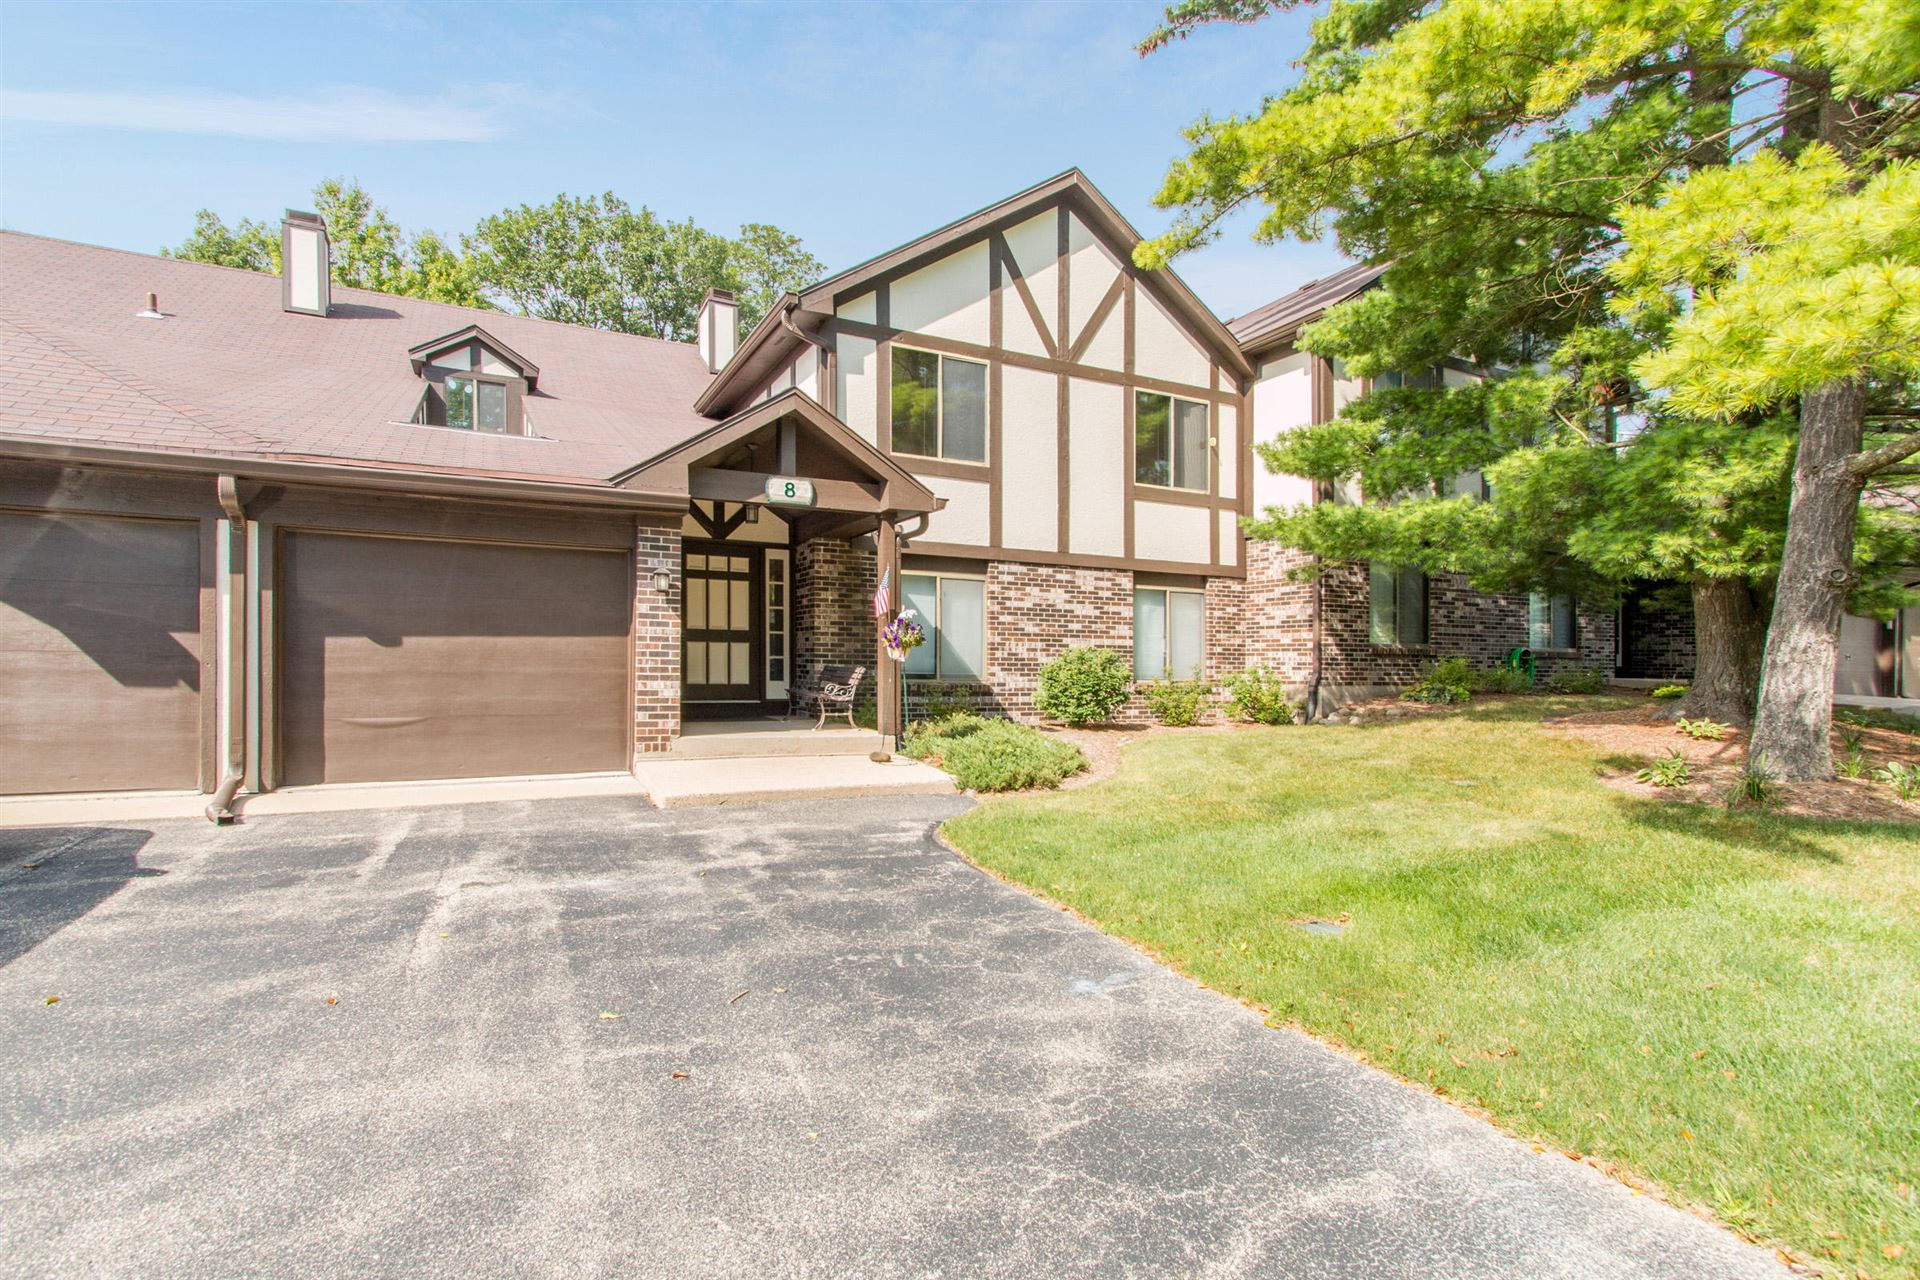 24 Driftwood Ct #D, Williams Bay, WI 53191 - #: 1692800